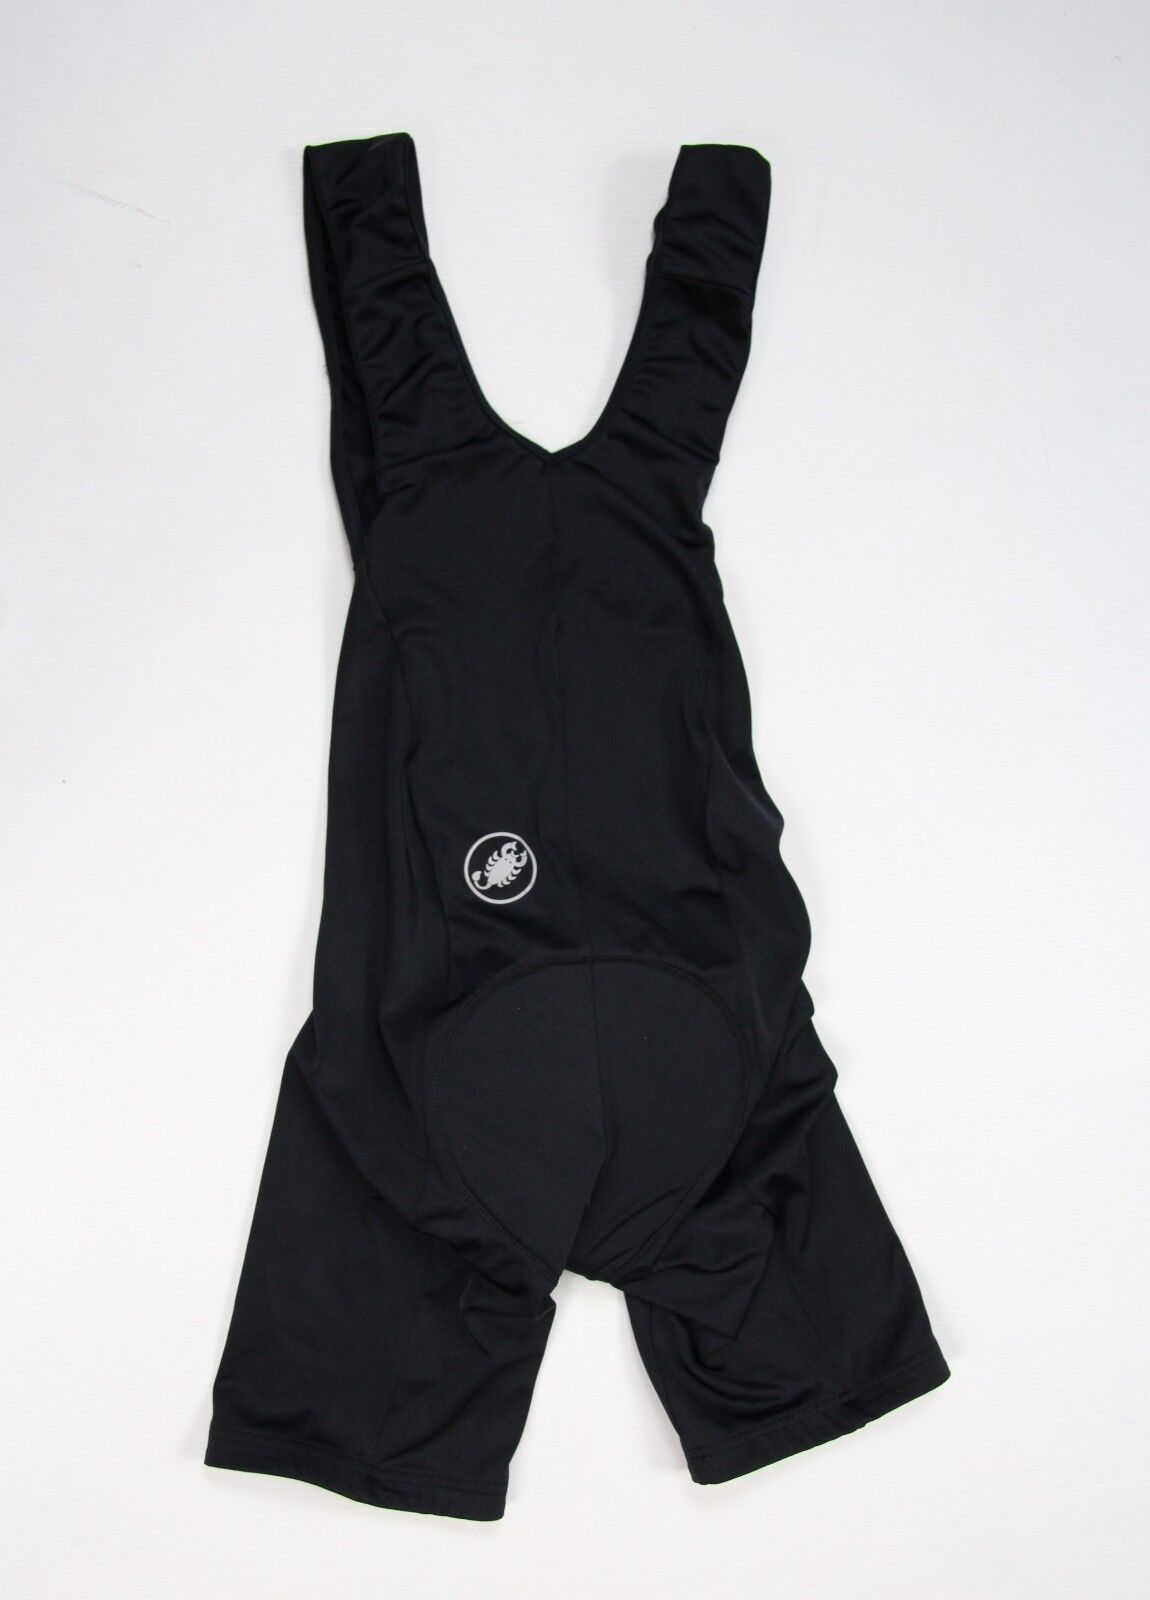 Original Bib SHORTS 3 4 Castlelli  Line  Size S Spring Autumn with pad  best sale